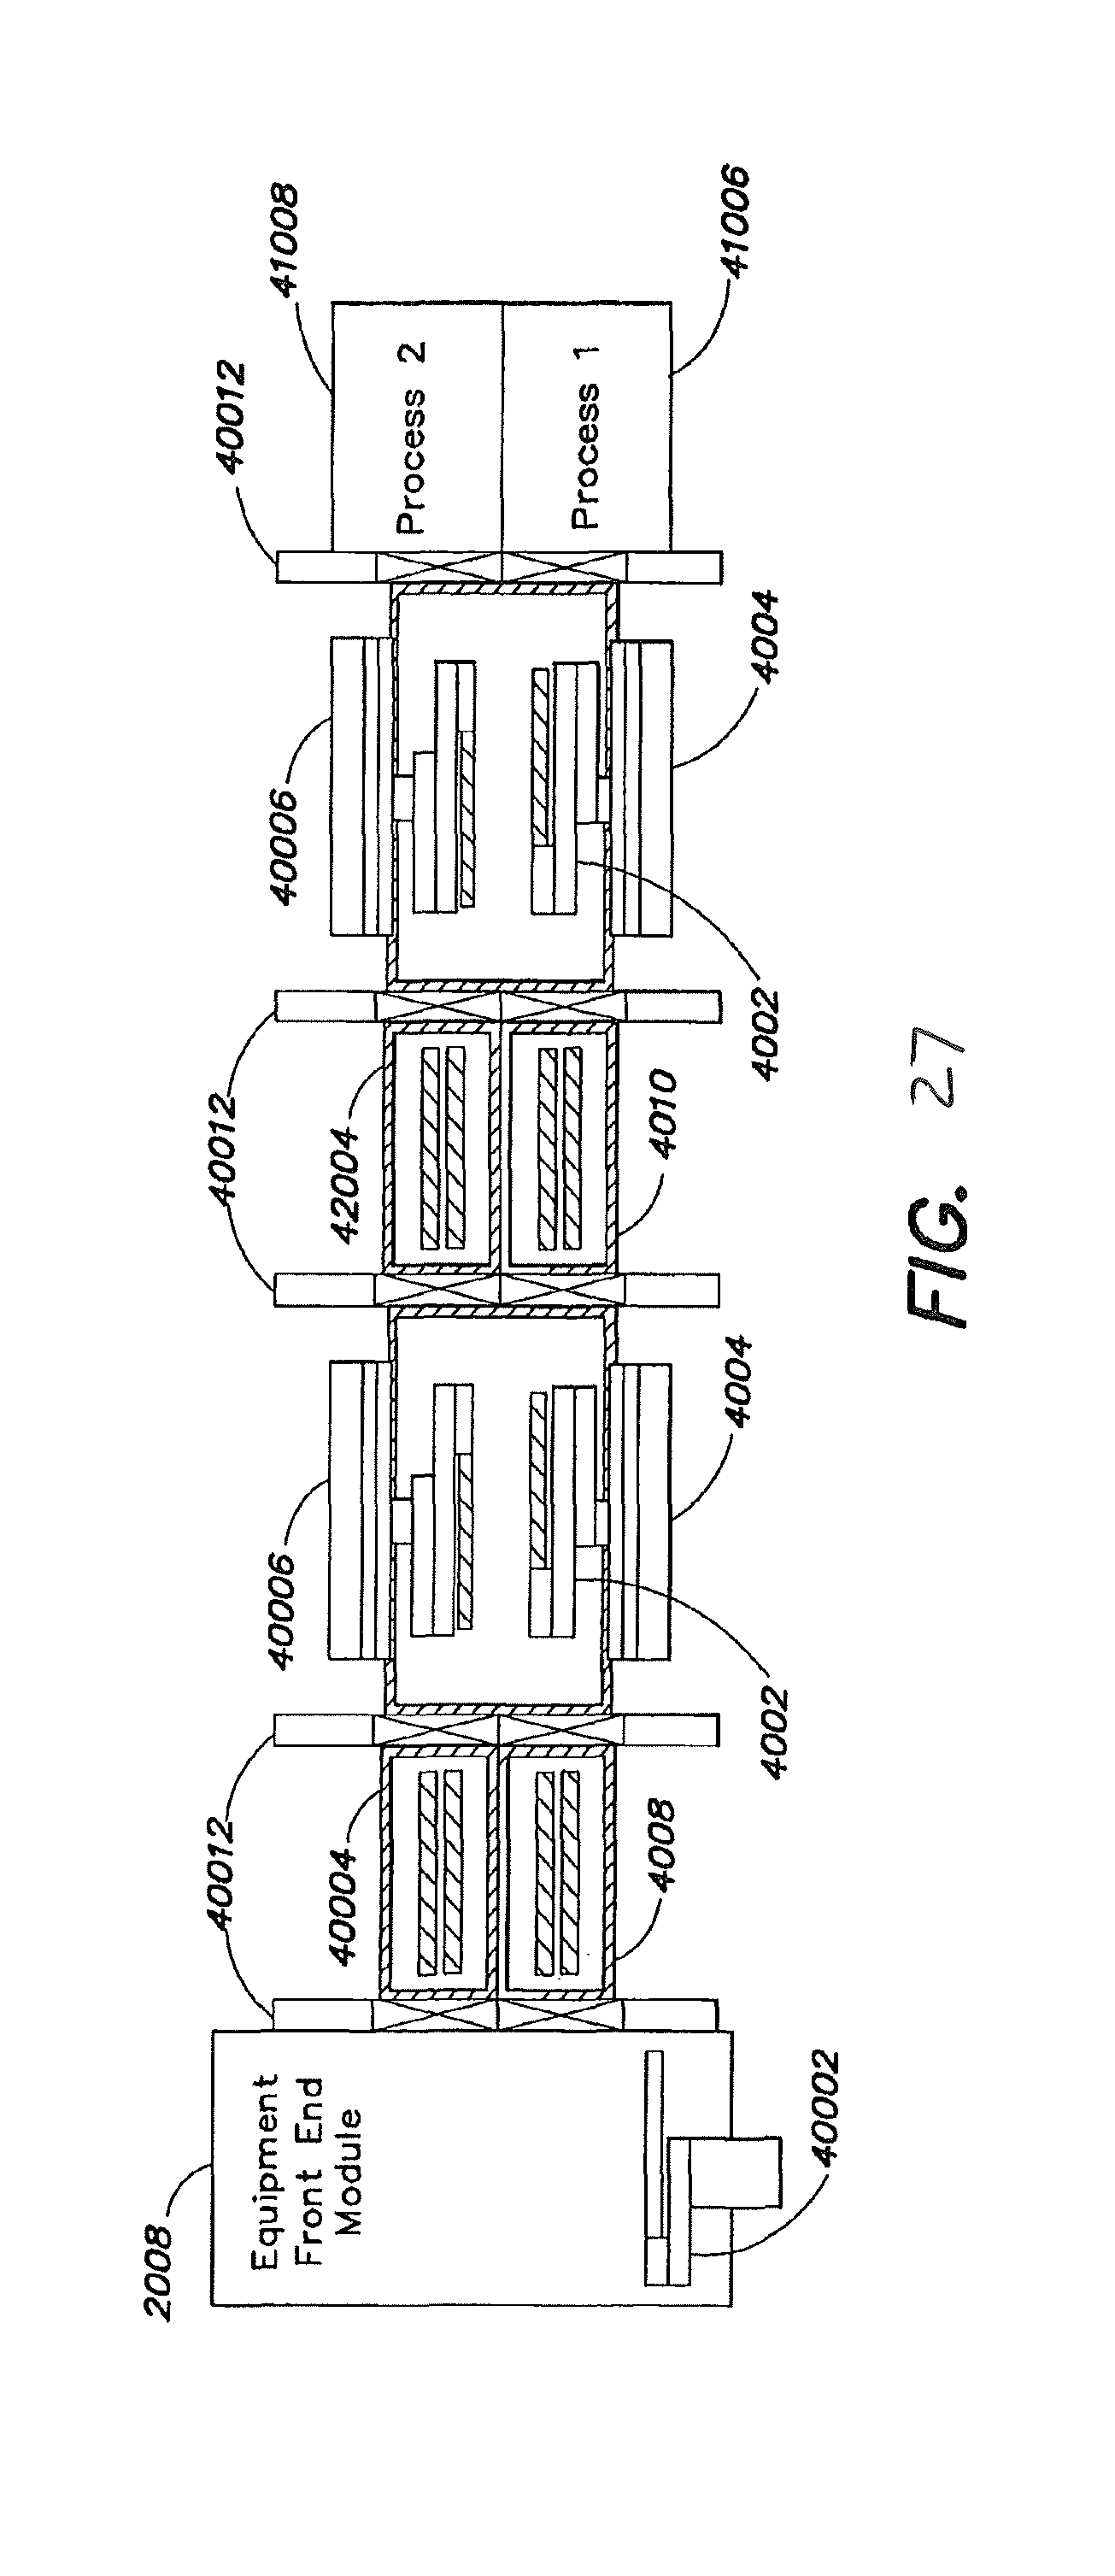 patent us8696298 - semiconductor manufacturing process modules